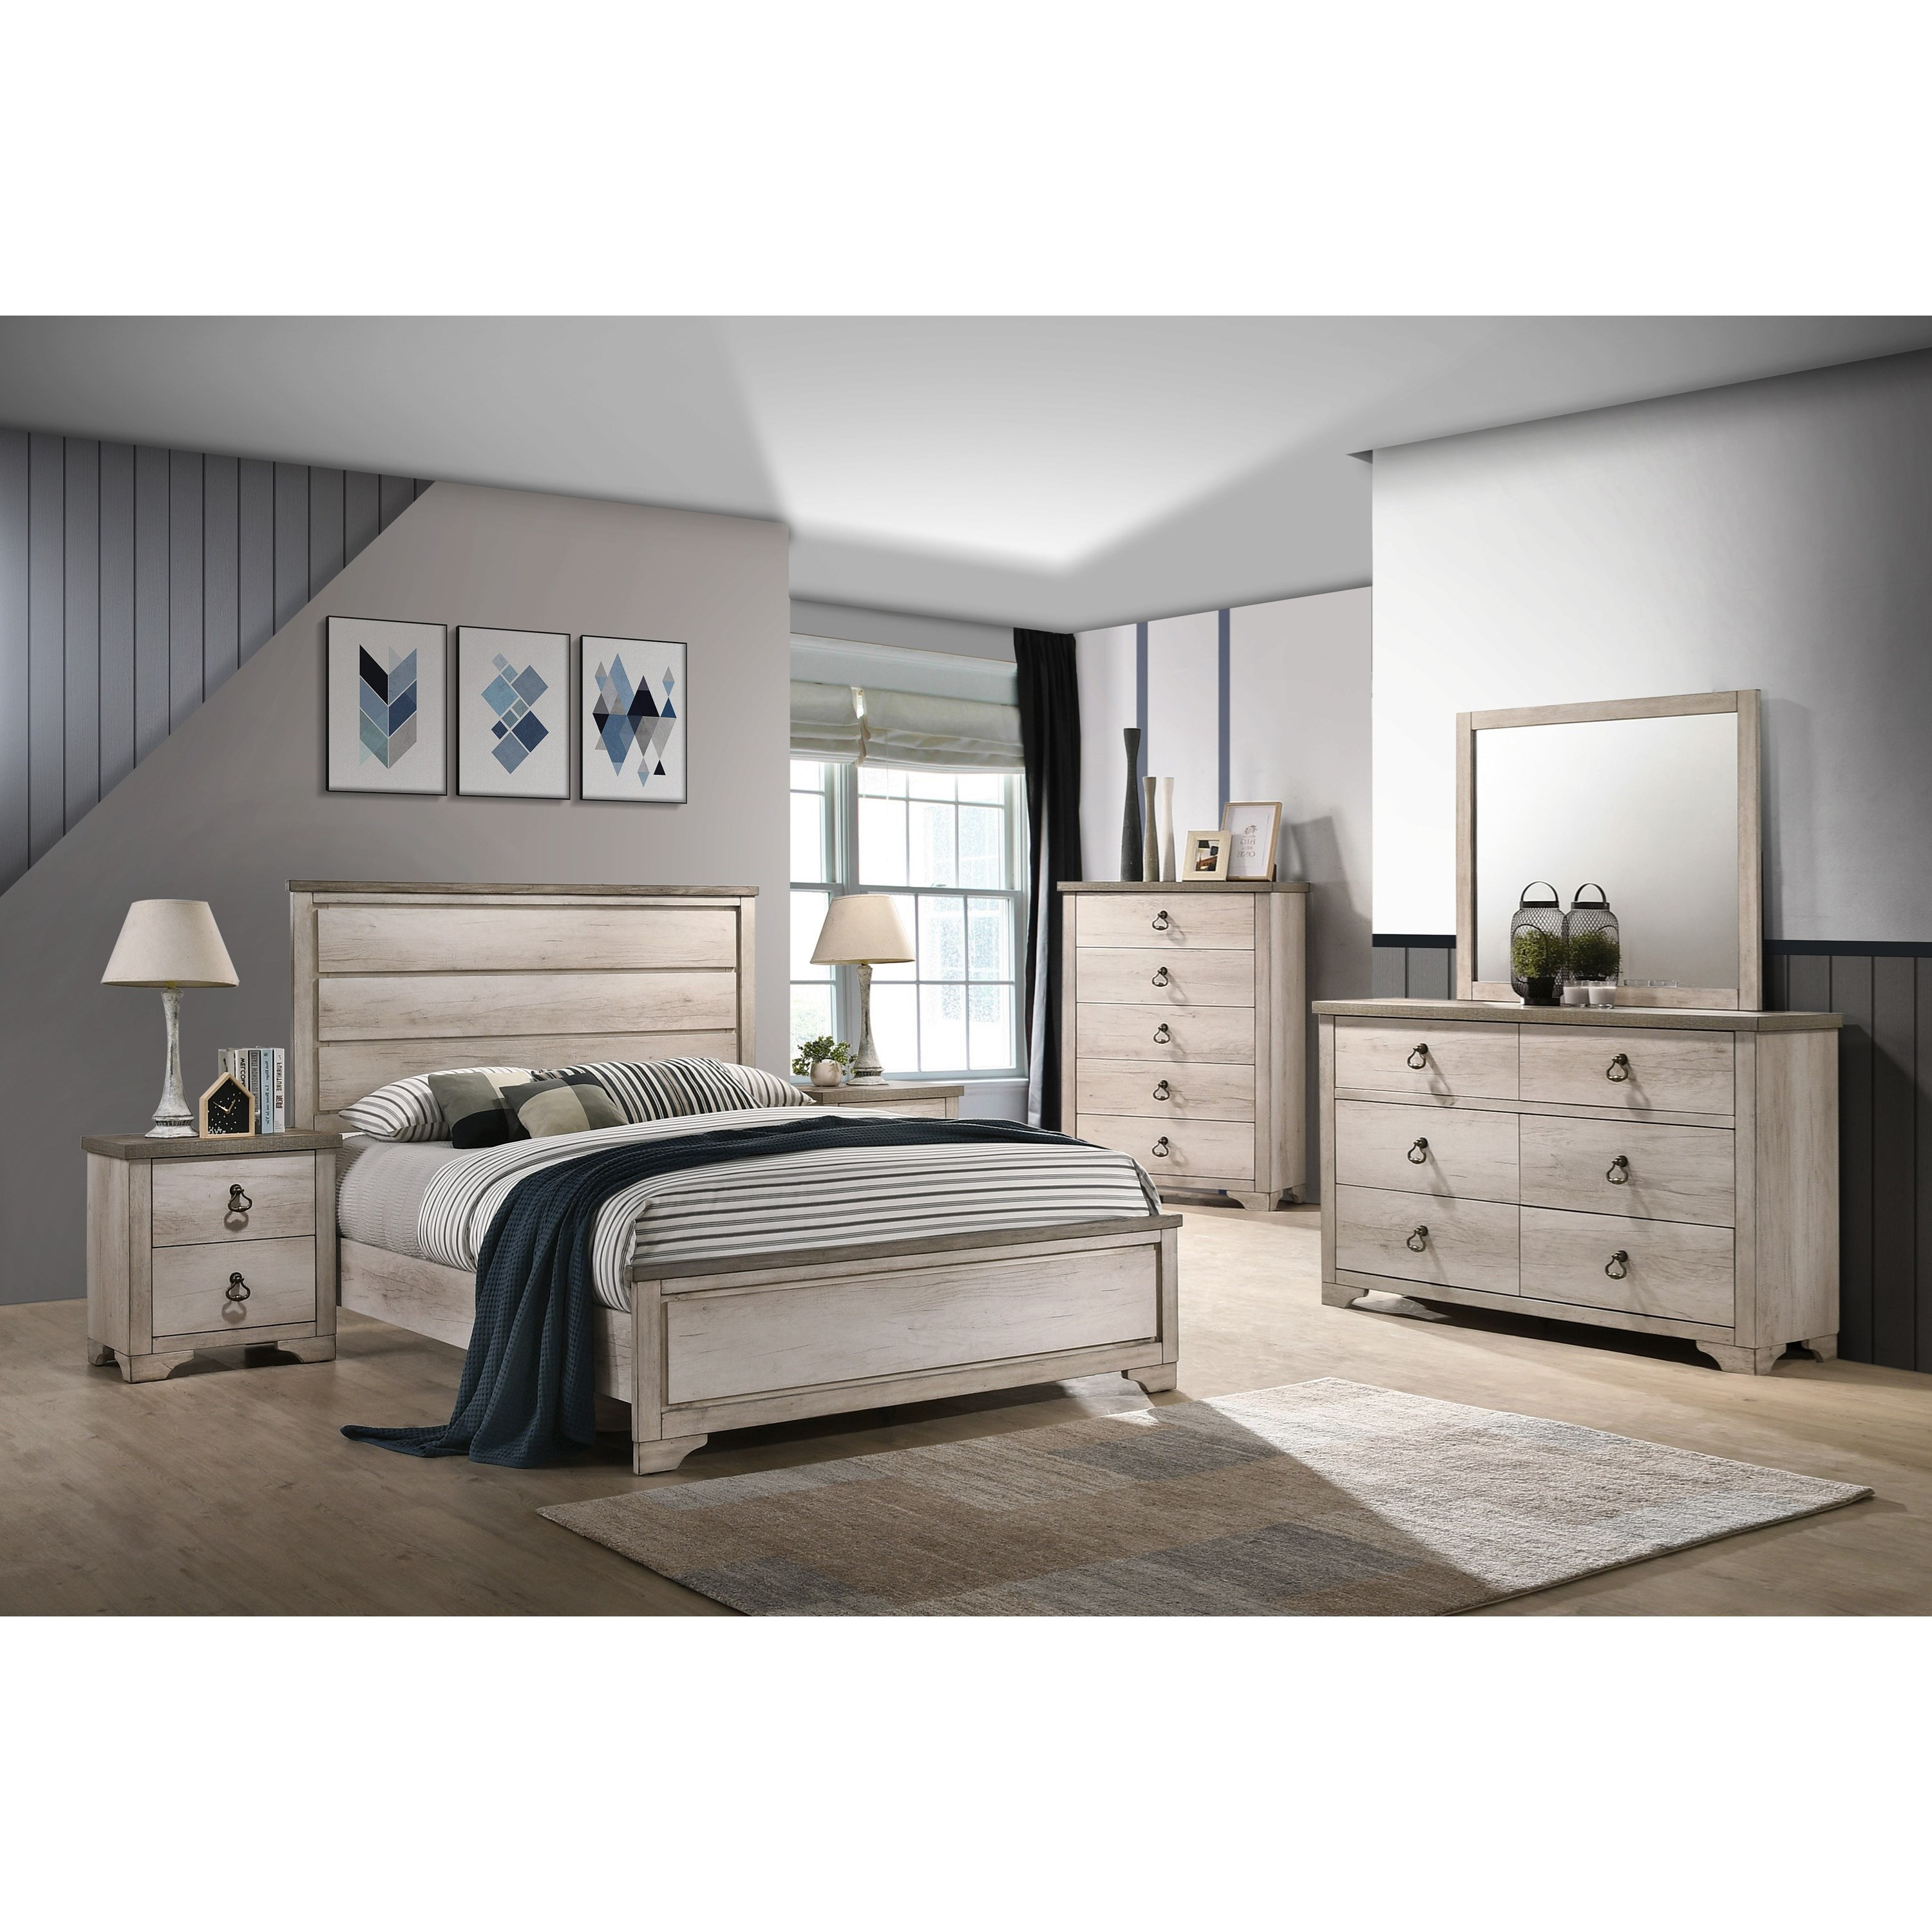 Patterson King Bedroom Group by Crown Mark at Rooms for Less